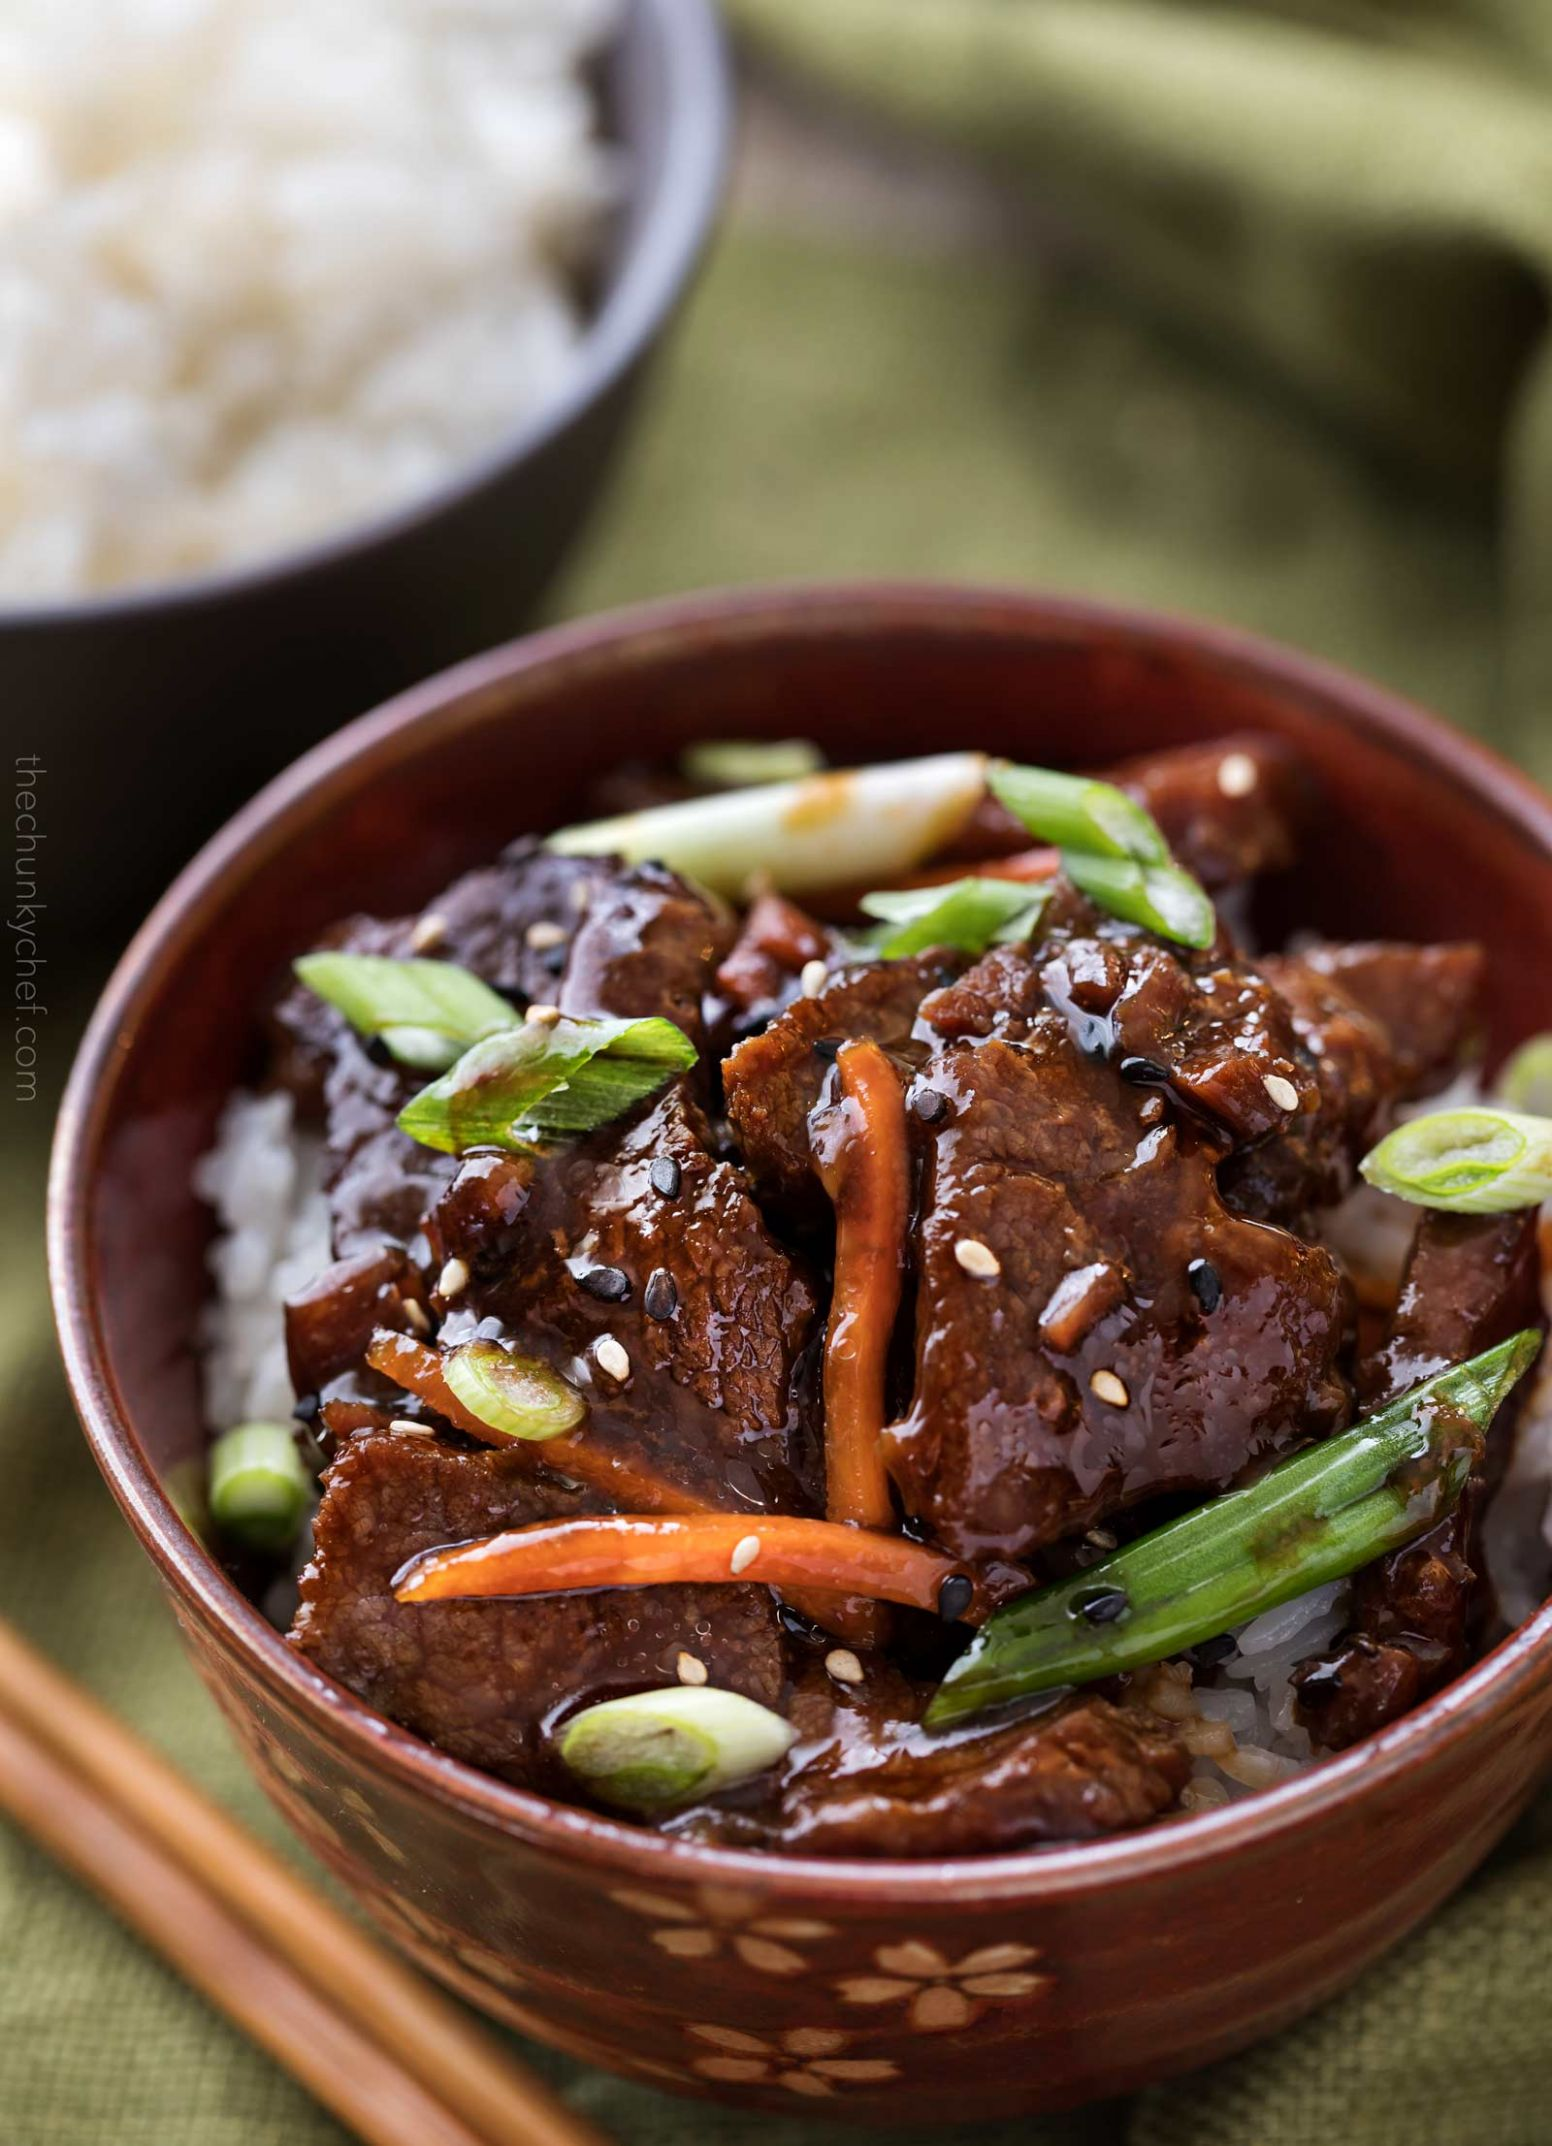 Easy Slow Cooker Mongolian Beef Recipe - The Chunky Chef - Recipes Beef In Crock Pot